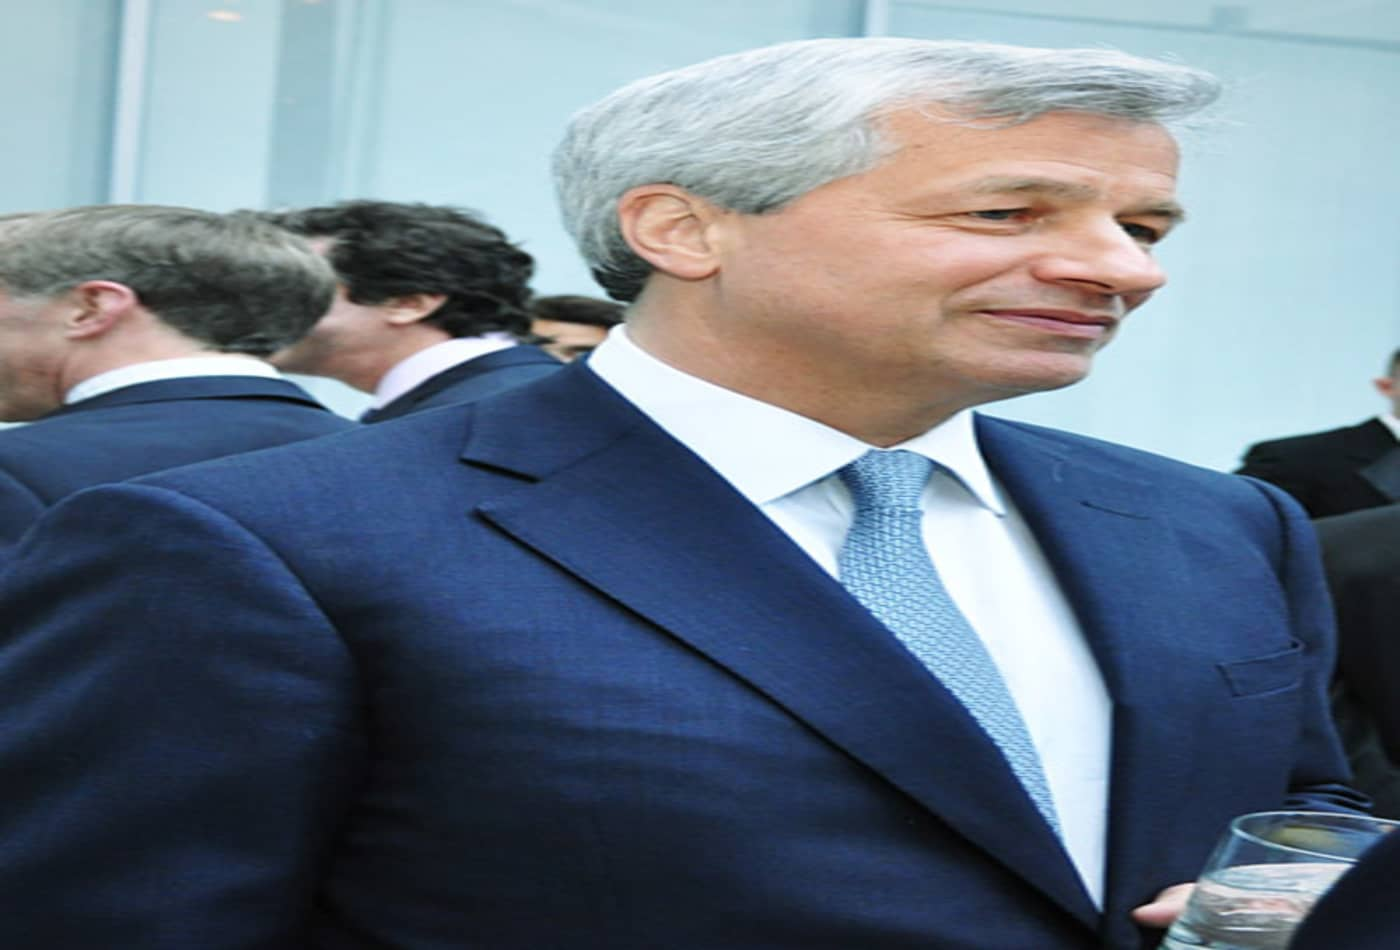 best-dressed-ceos-jaime-dimon2.jpg